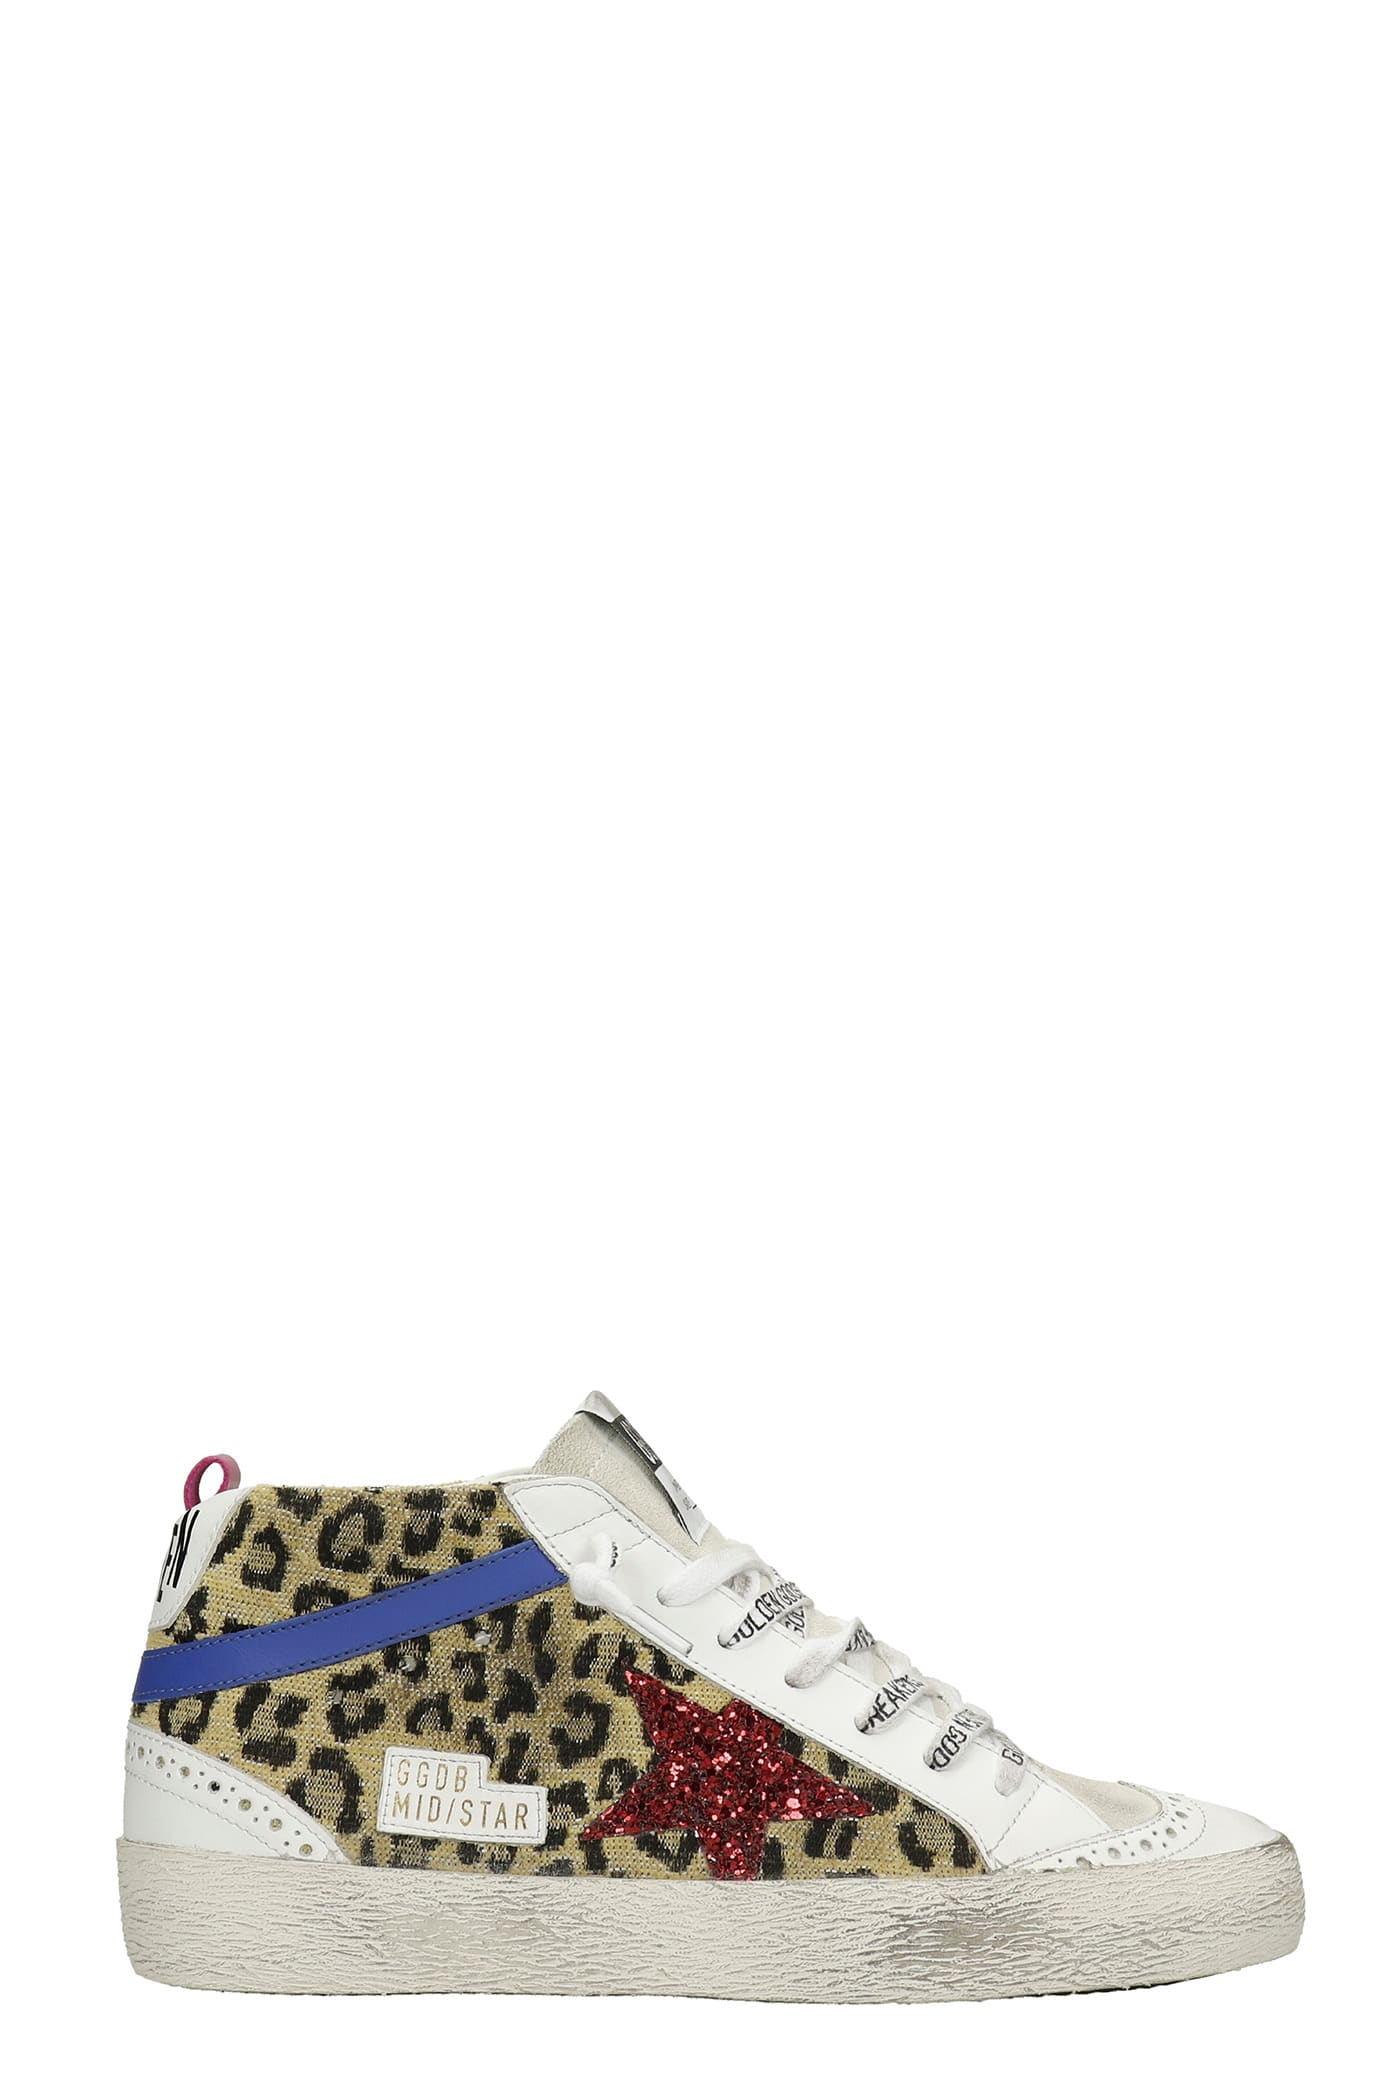 Golden Goose Mid Star Sneakers In White Leather And Fabric